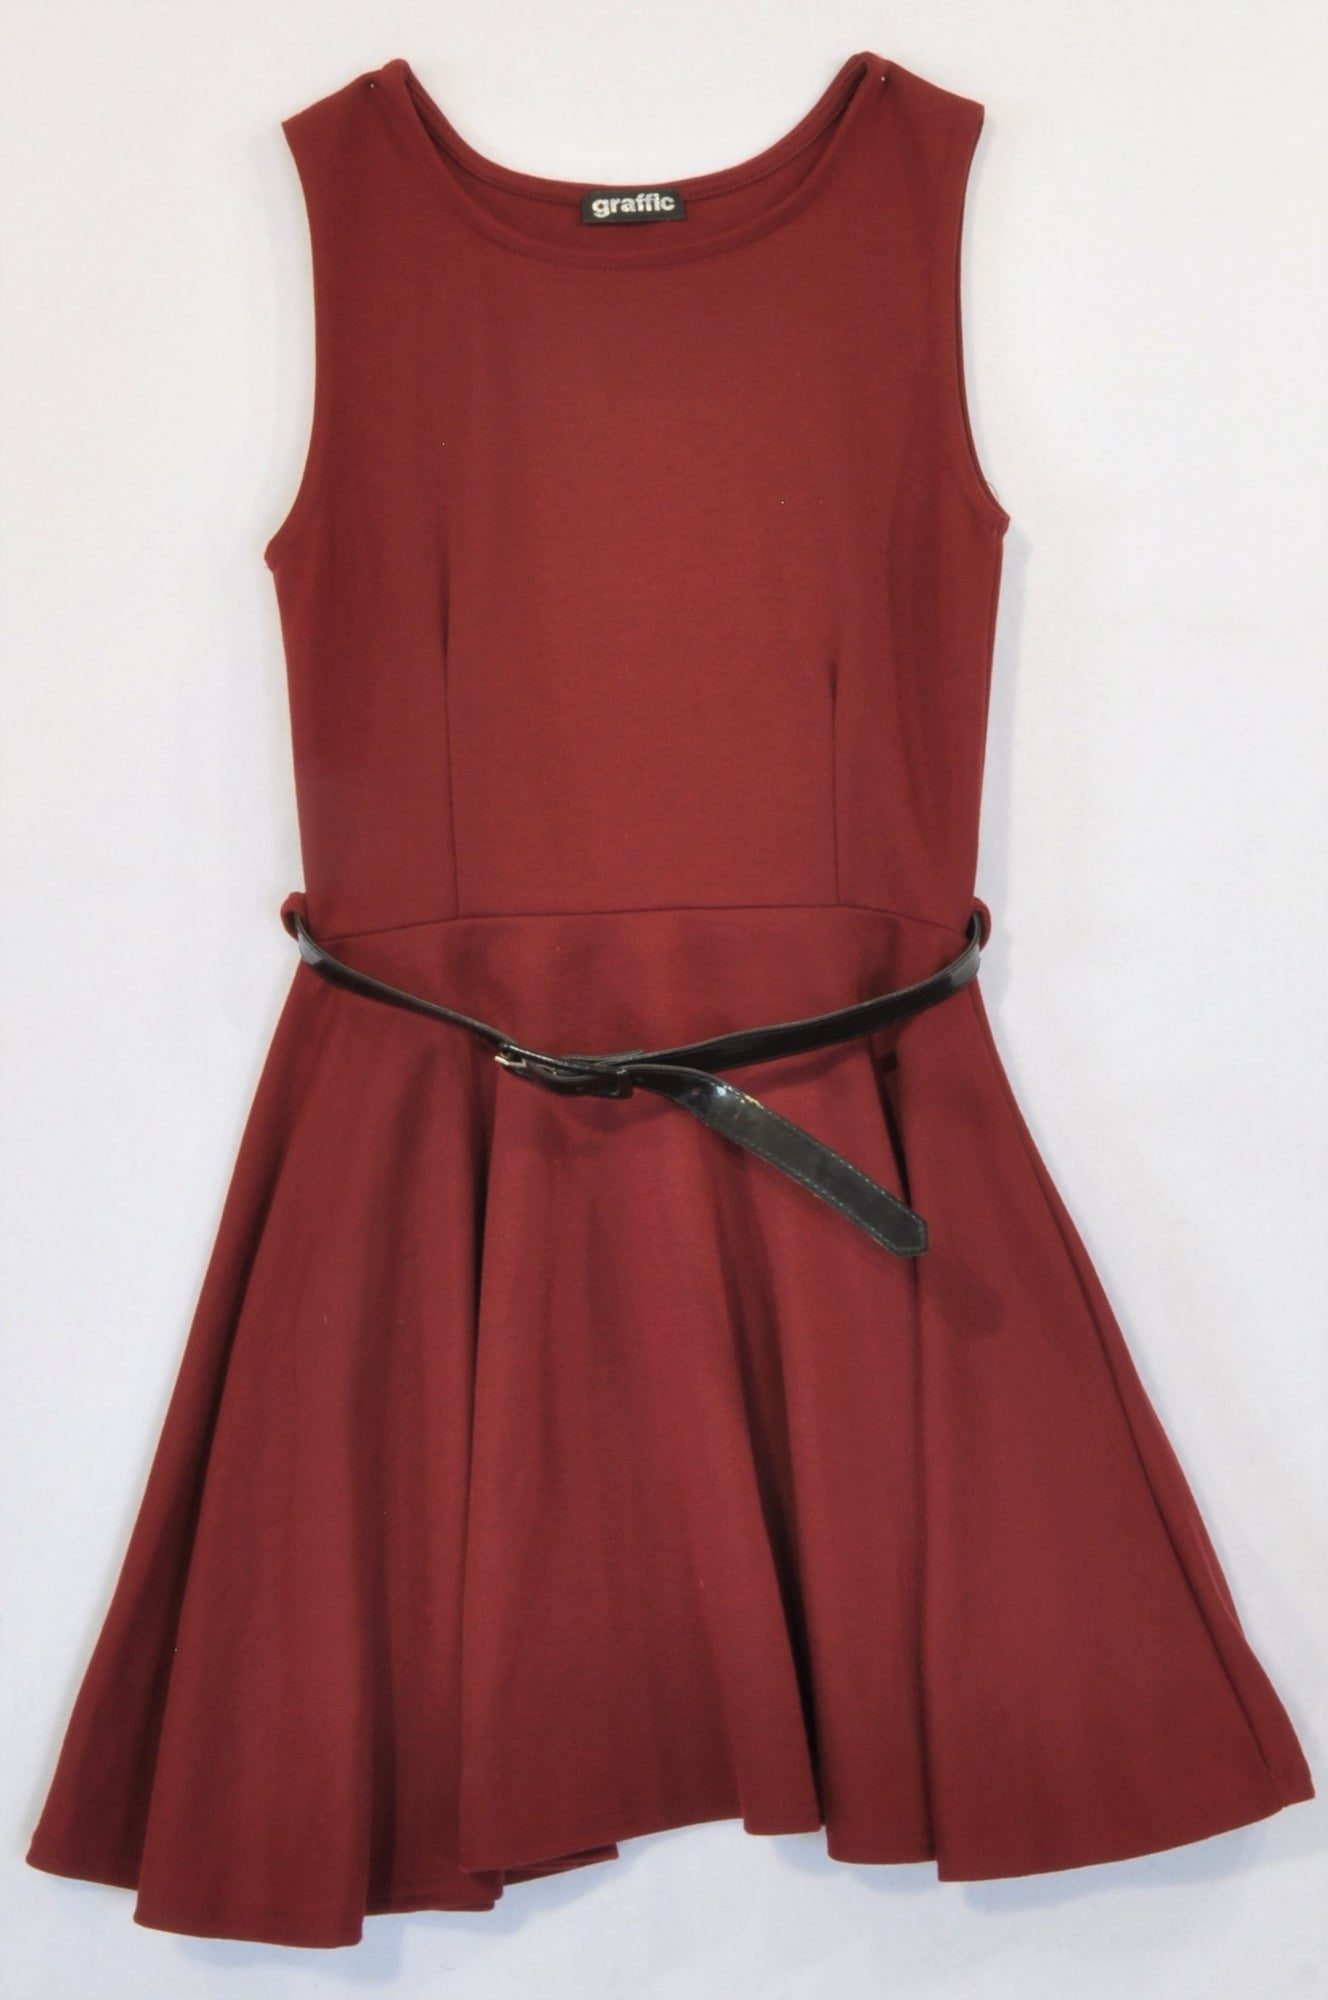 Graffic Maroon Belted Skater Dress Women Size 6